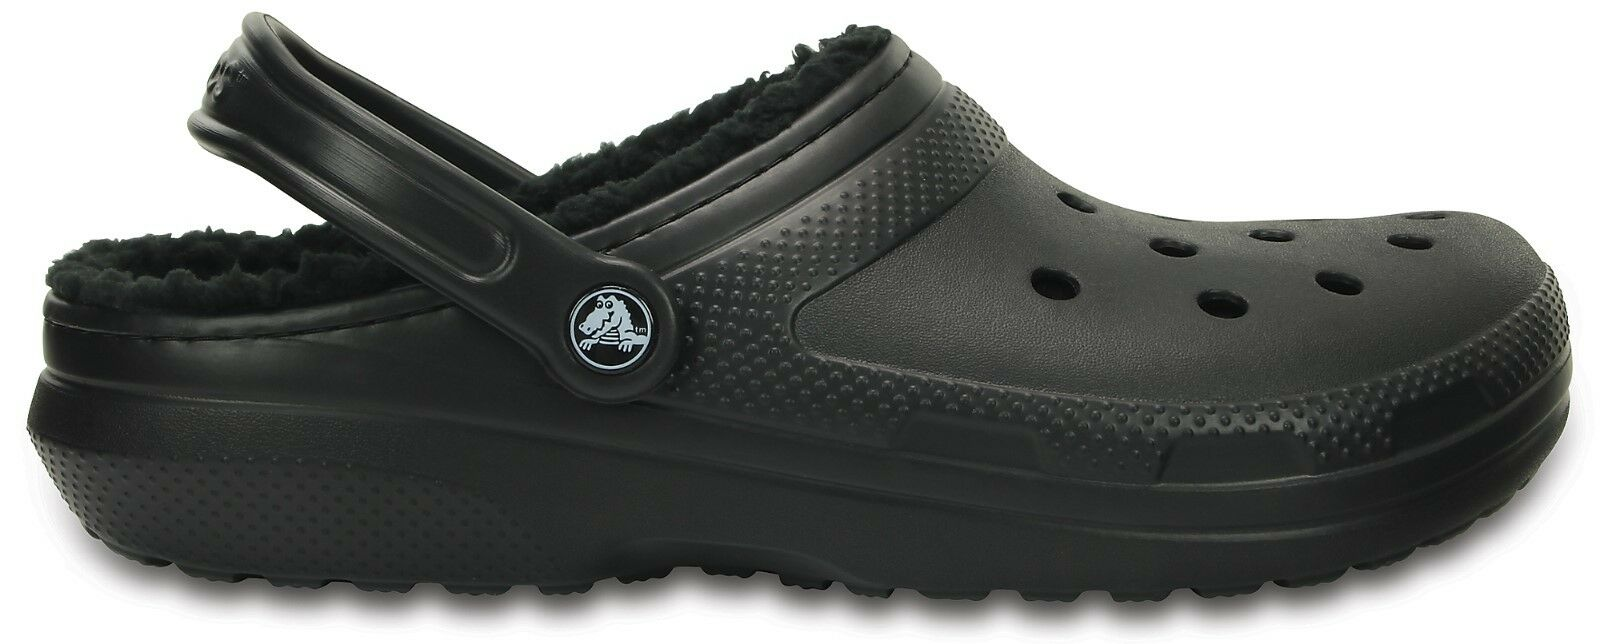 486c04ab355c Crocs Classic Lined Clog 203591 - 060 Black Unisex Shoes 21259302 M6 ...